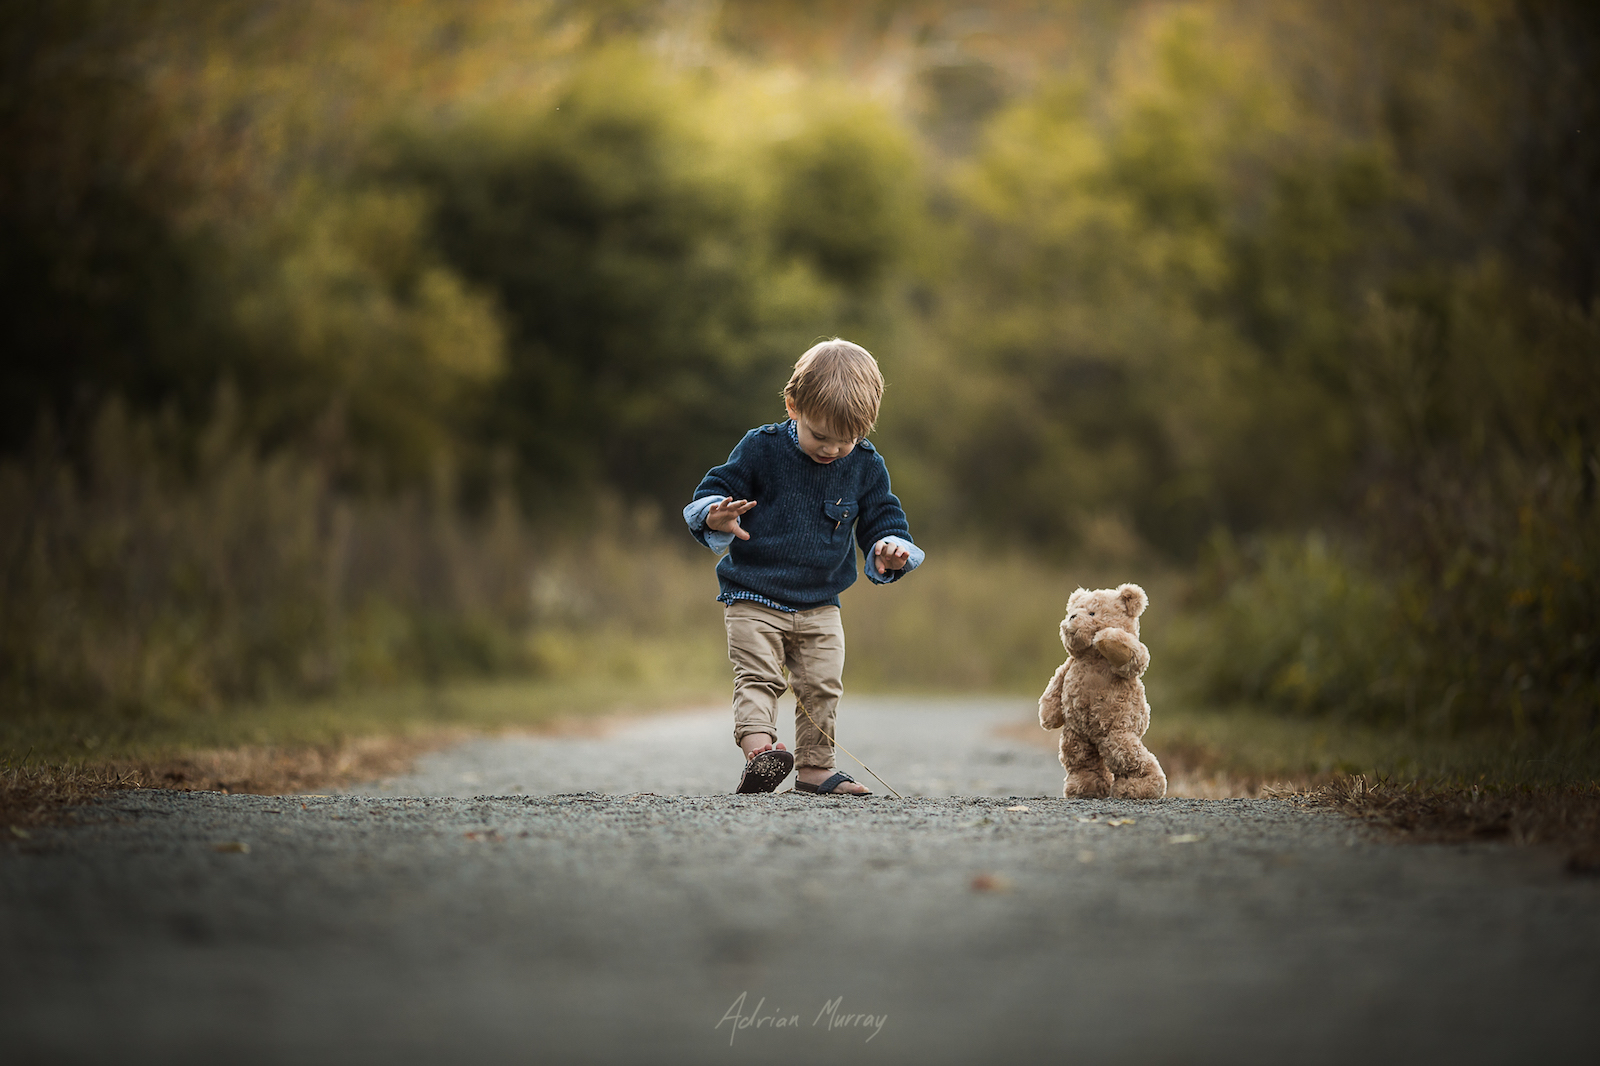 DIY: The Secret Behind Adrian Murray's Posable Teddy Bear